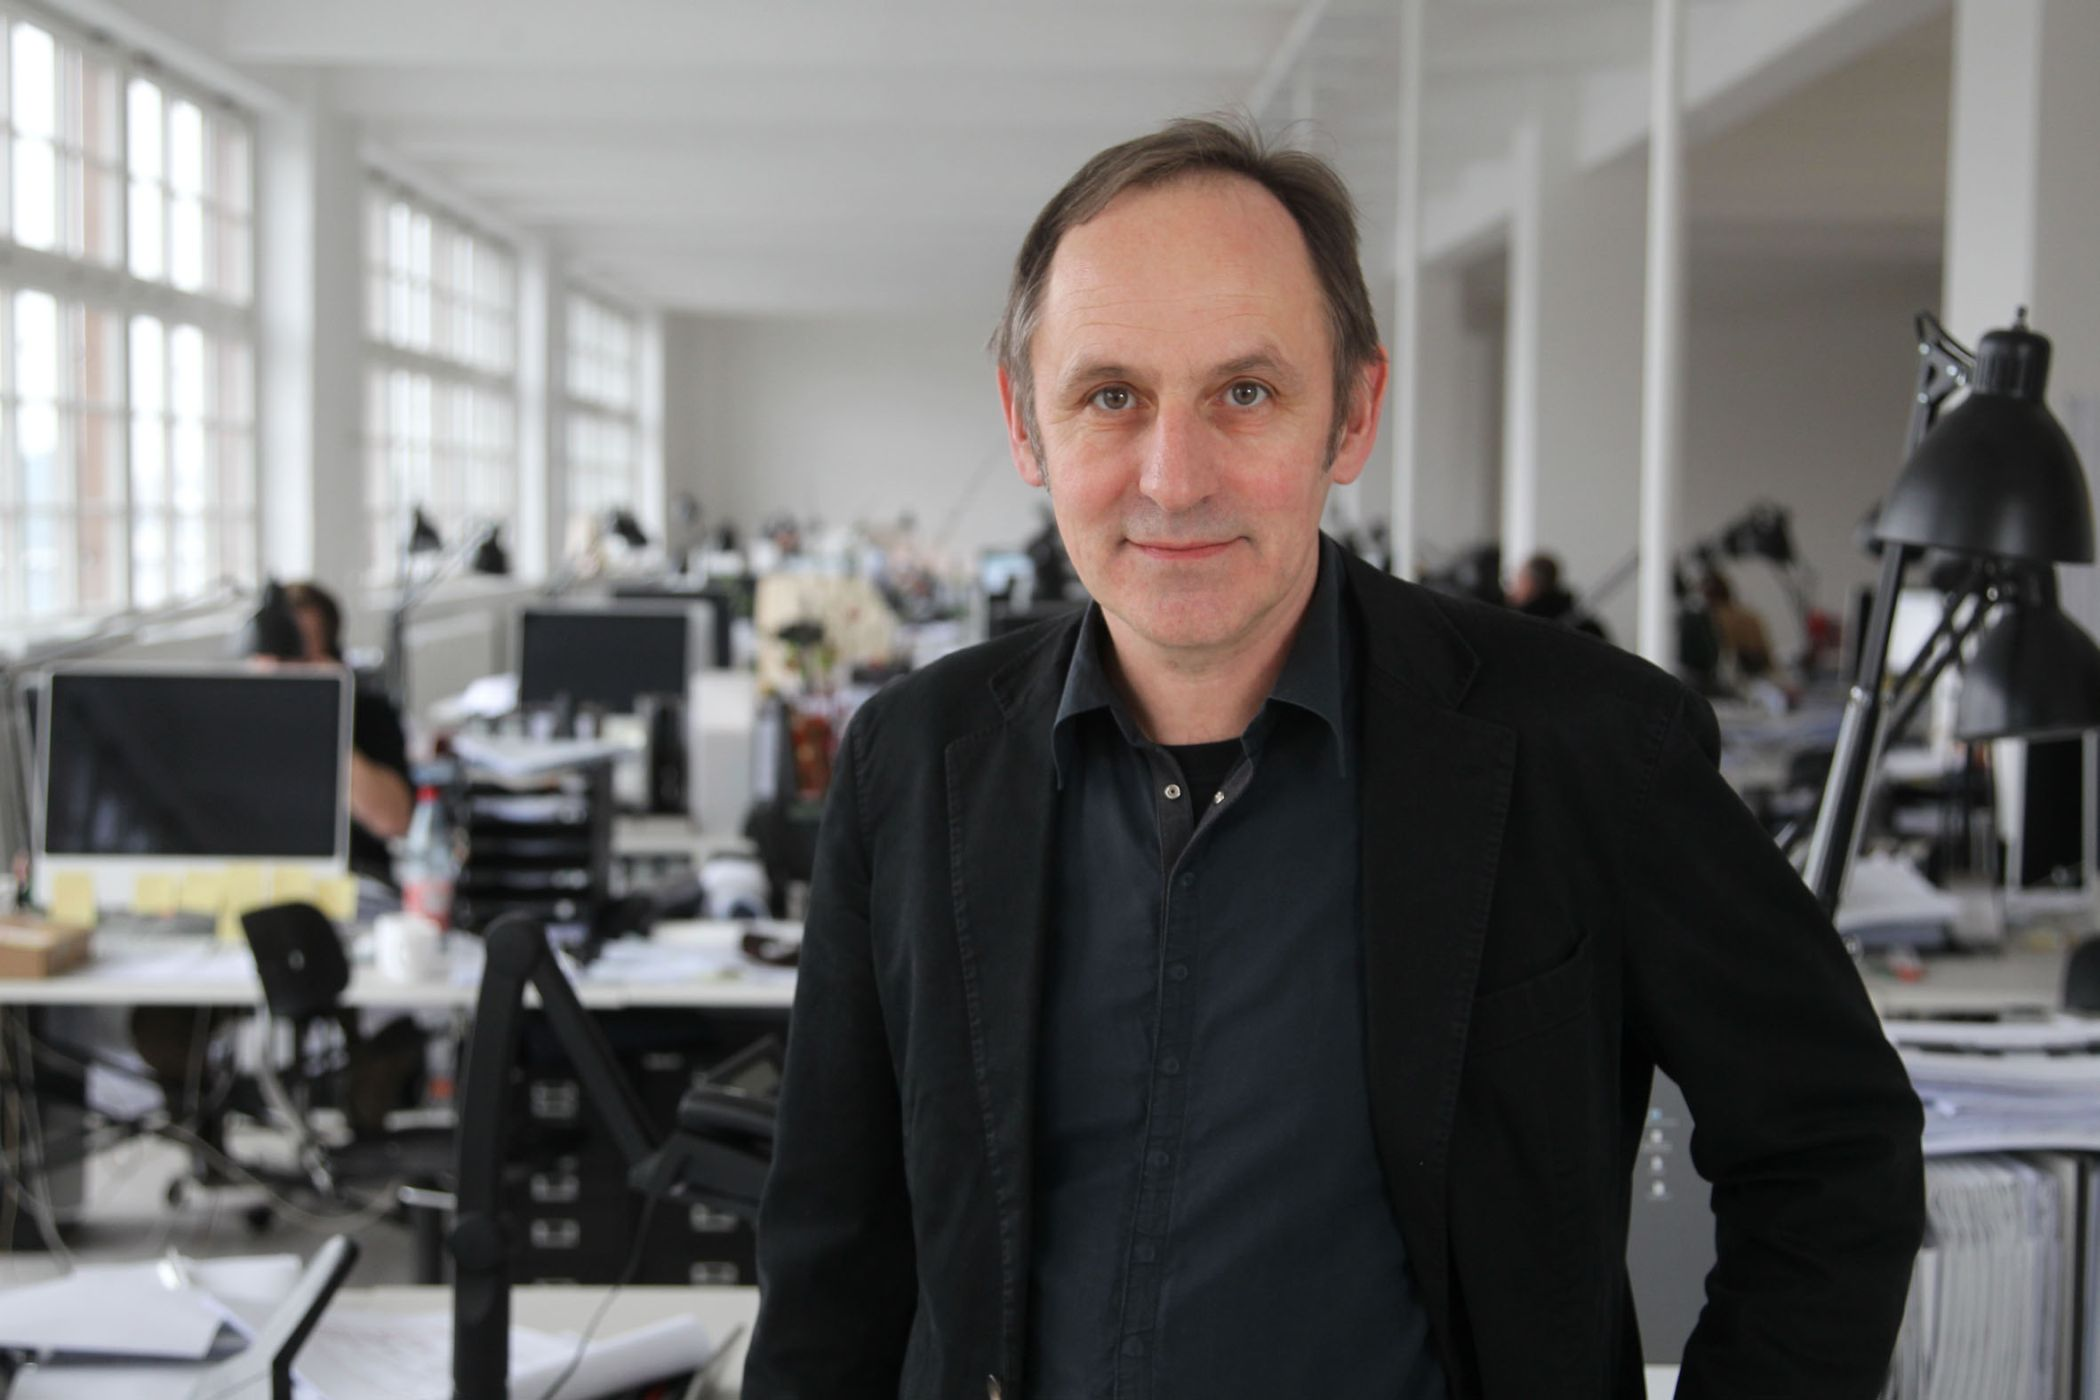 Volker Staab